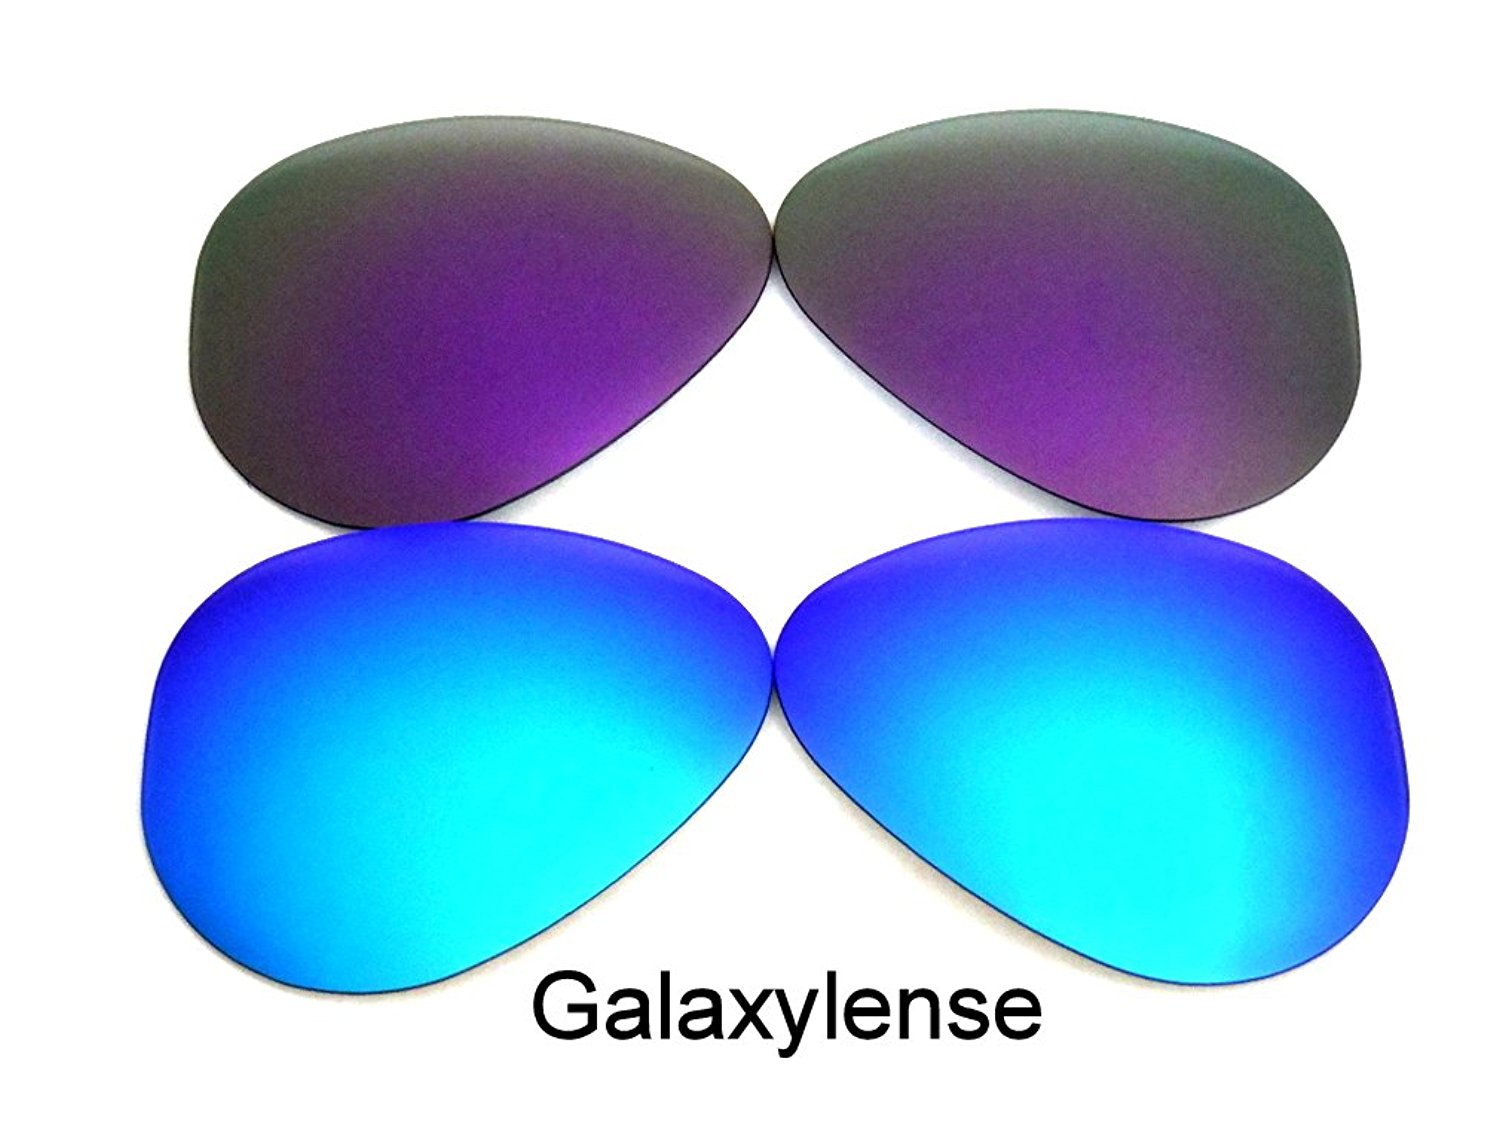 354d409c2e Get Quotations · Replacement Lenses For Ray-Ban RB3025 Blue Purple 62 mm  Polarized 2Pairs